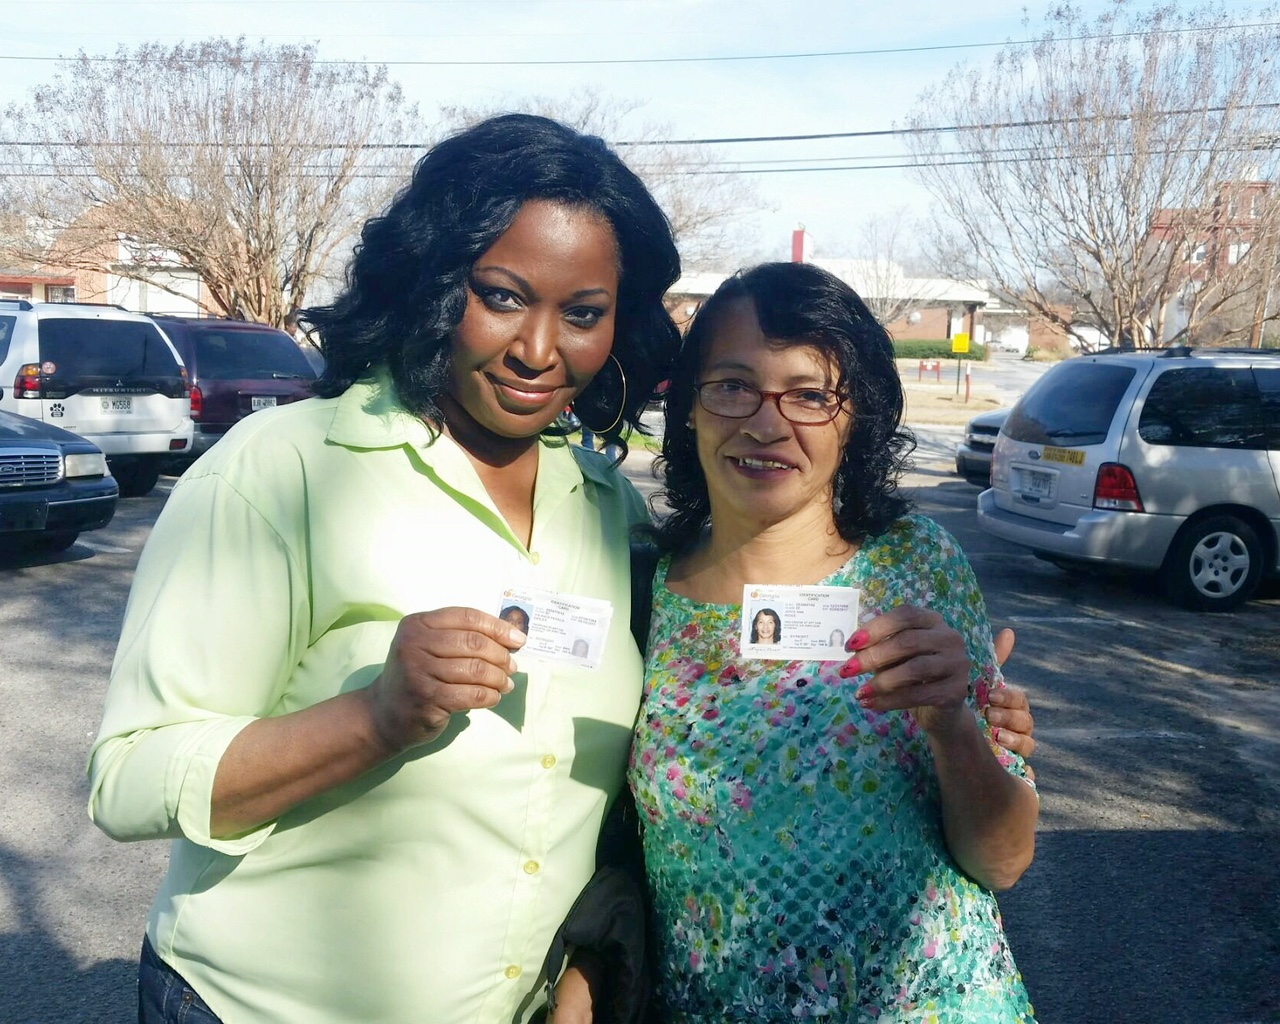 - Without a photo ID, a person cannot find work, apply for housing or social assistance, visit a relative in jail, vote, or even get into some shelters. GAP volunteers transport clients to the Department of Driver's Services each Thursday to obtain photo ID's, and pay their fees. An average of 25 clients per month are provided with a photo ID.